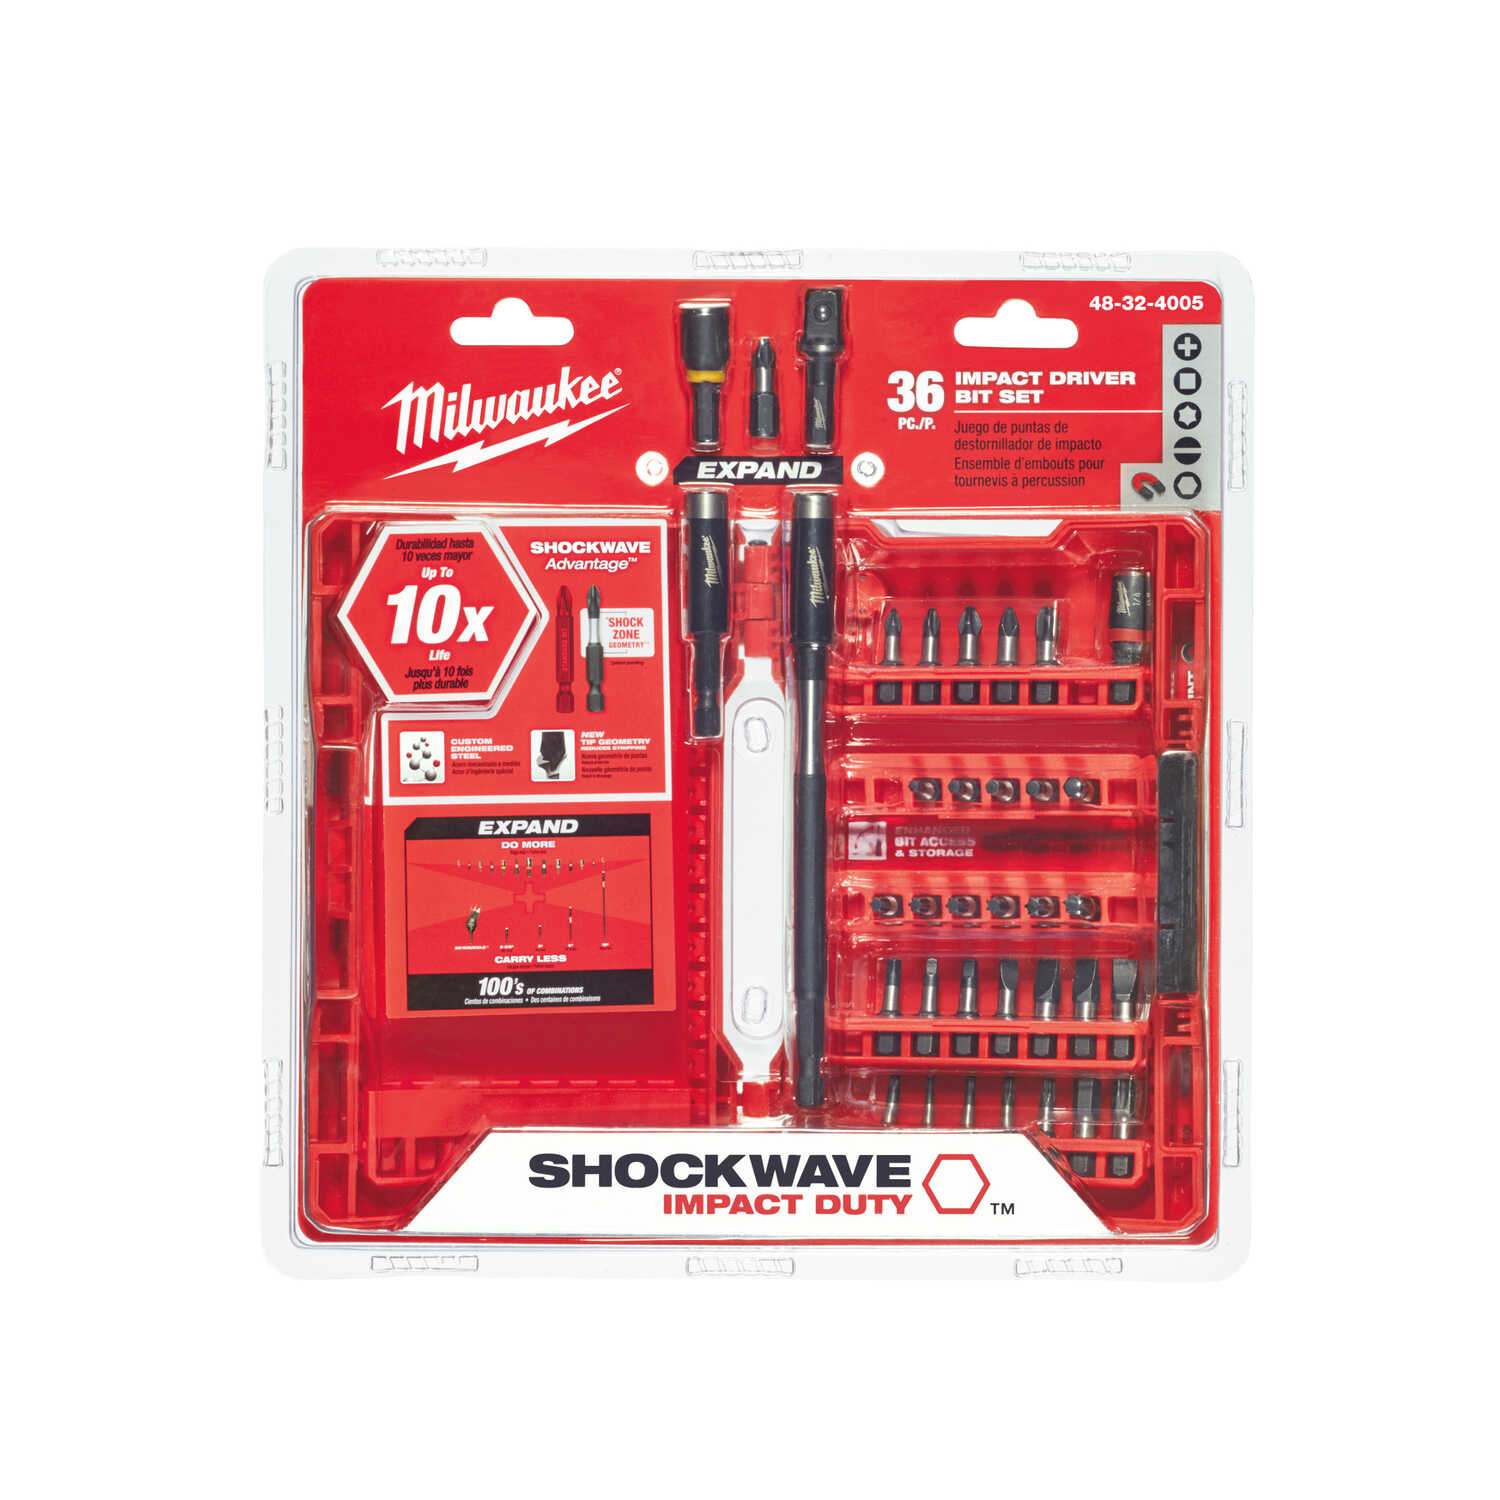 Milwaukee  SHOCKWAVE  Impact Duty  Screwdriver Bit Set  Steel  Hex Shank  1/4 in. 36 pc. Assorted